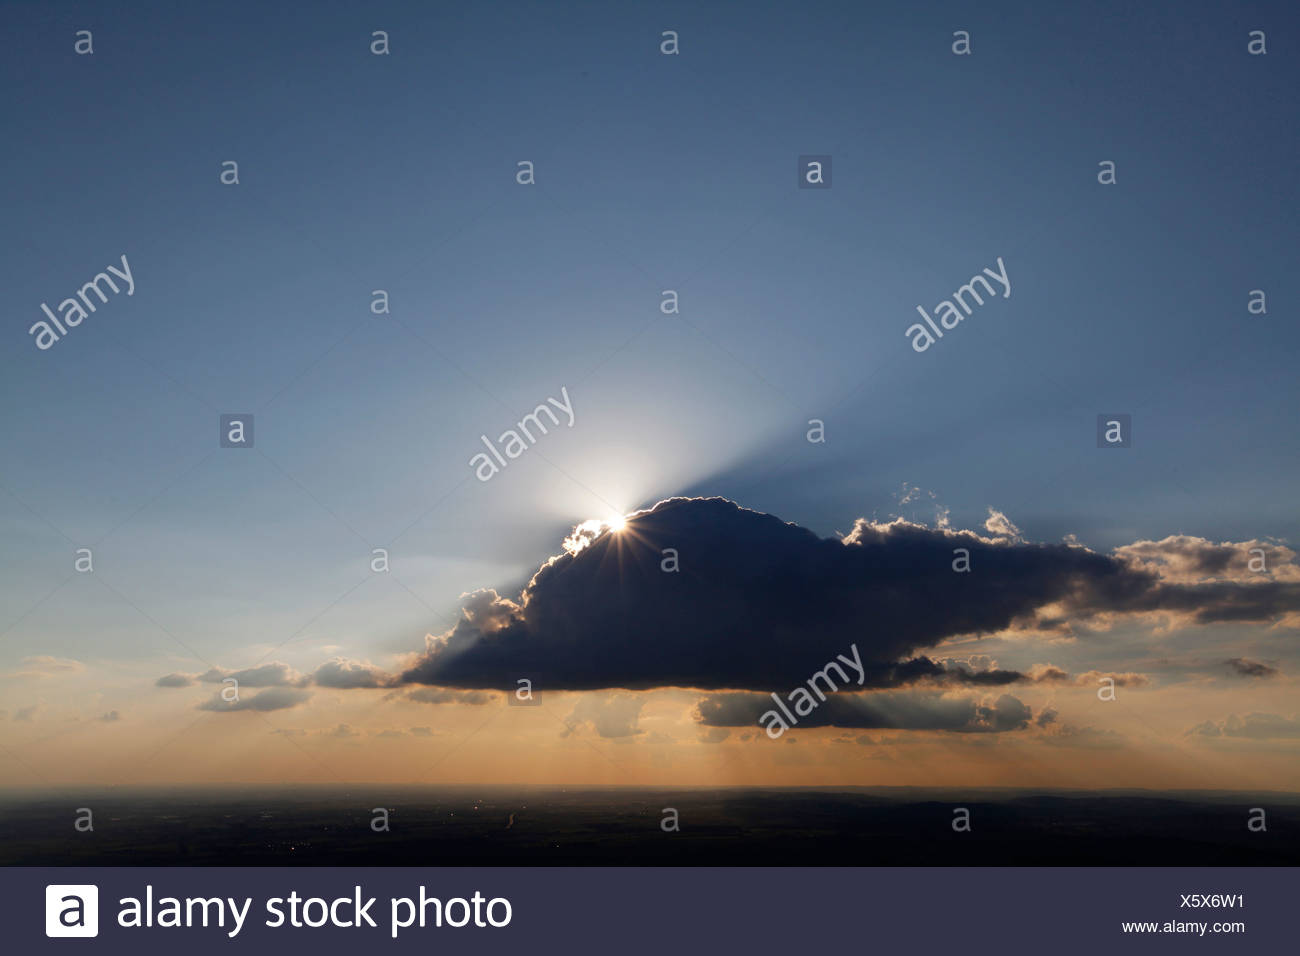 Aerial photo, Soest Boerde, sun with sun rays behind a cloud in the evening sky, Soest, Soest district, North Rhine-Westphalia - Stock Image